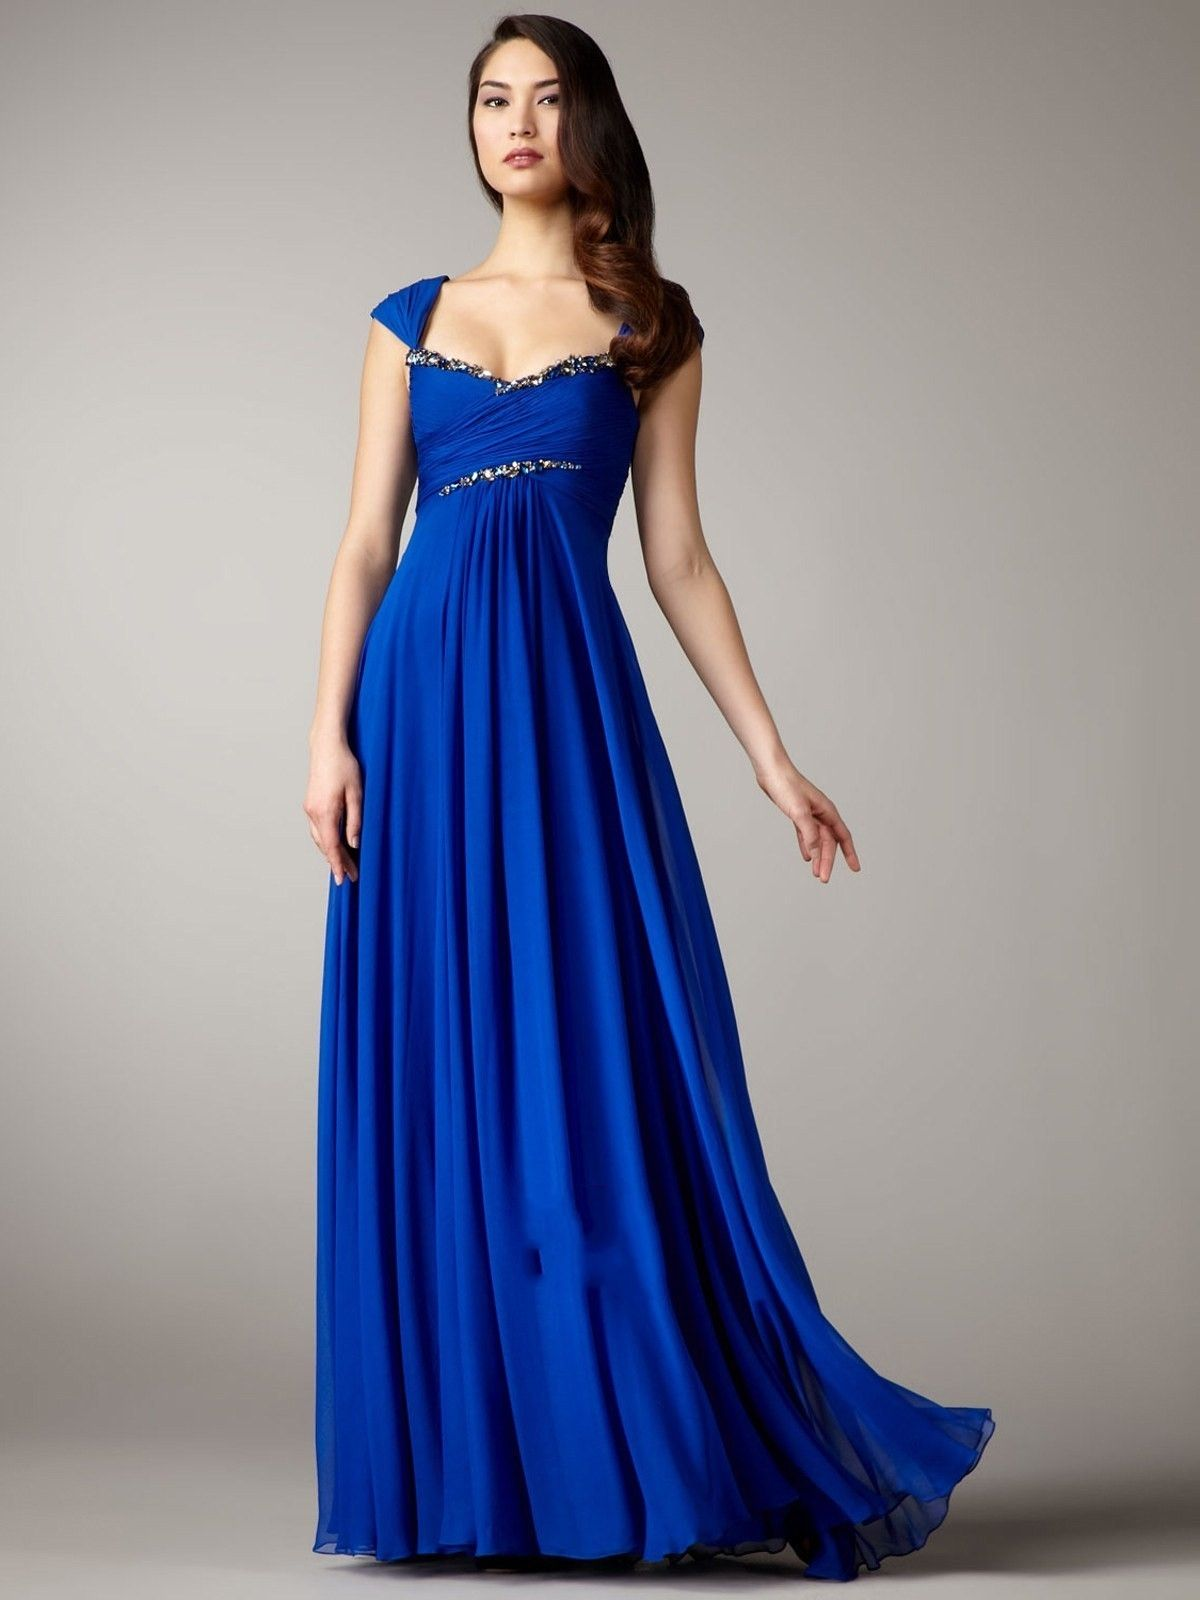 Royal Blue Bridesmaid Dress Yes Google Search